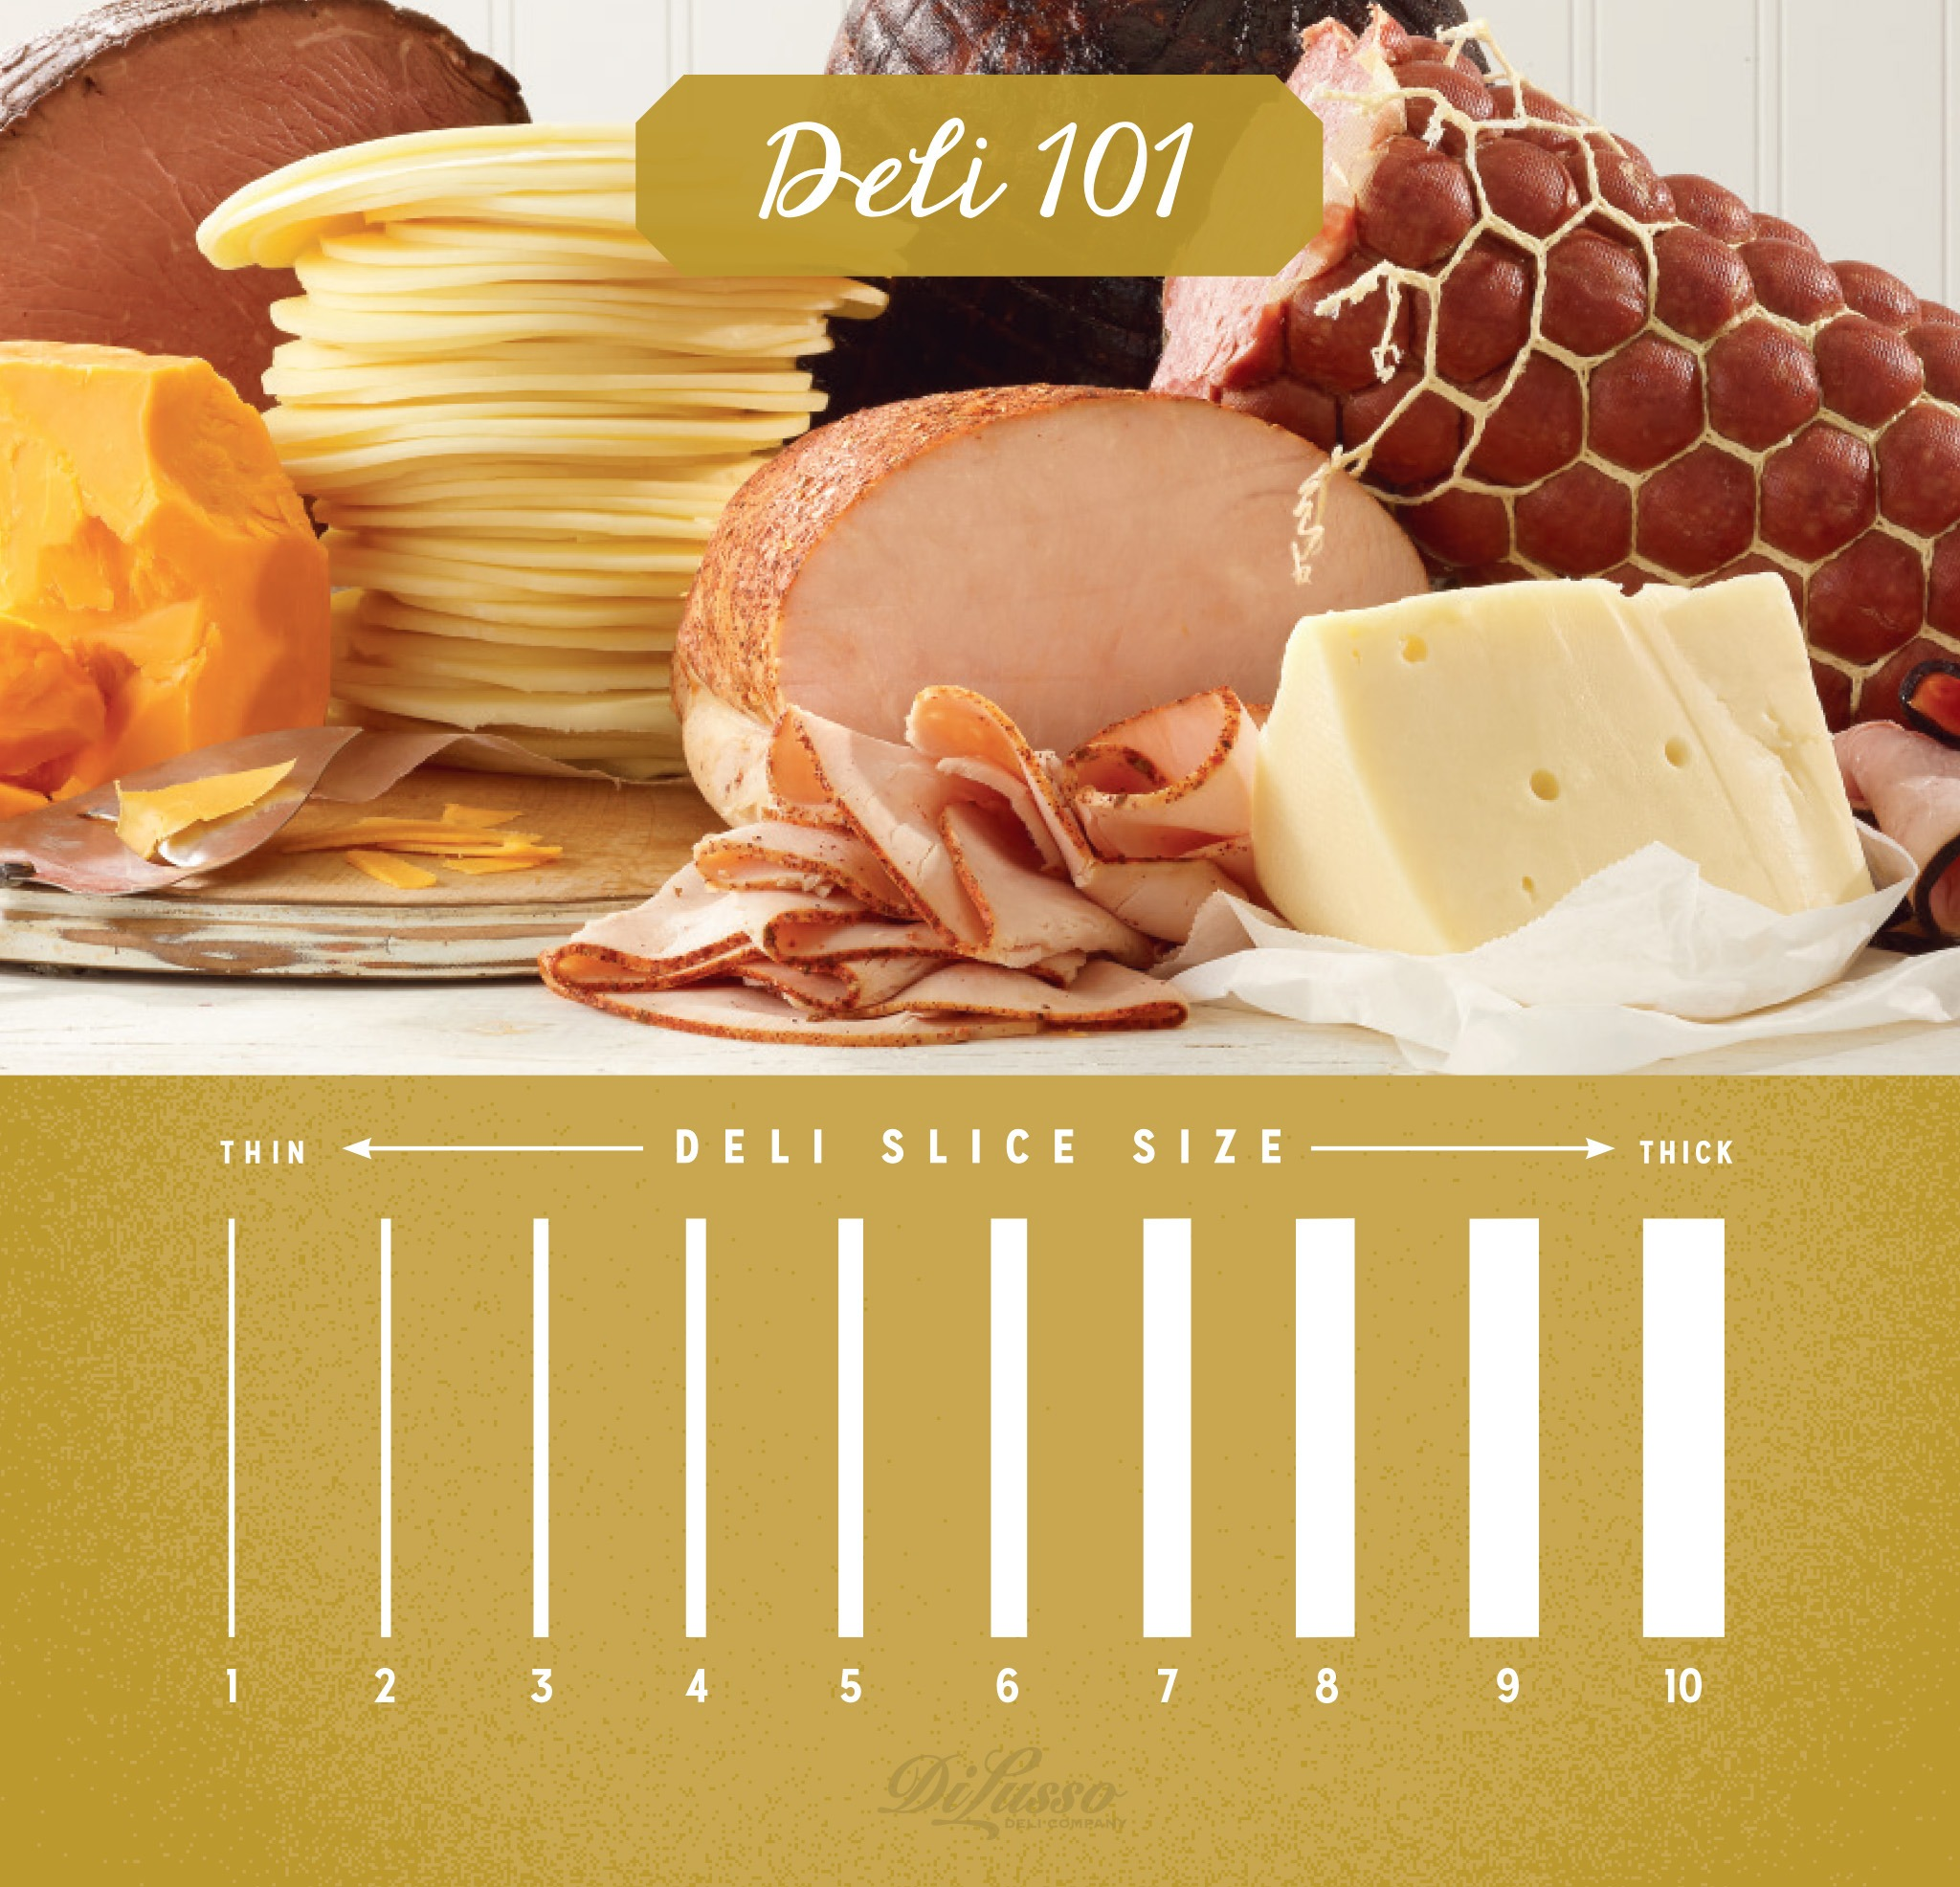 Royalty Free Stock Image Sandwich Single Fresh Cheese Salad Meat Isolated Over White Background Image34726636 in addition 500 together with CHJvY2Vzc2VkIG1lYXQ also Stock Photo Smoked Meat Image1617380 moreover 32564 Kirkland Signature Sliced Black Forest Ham 1 68 Lbs. on deli lunch meat